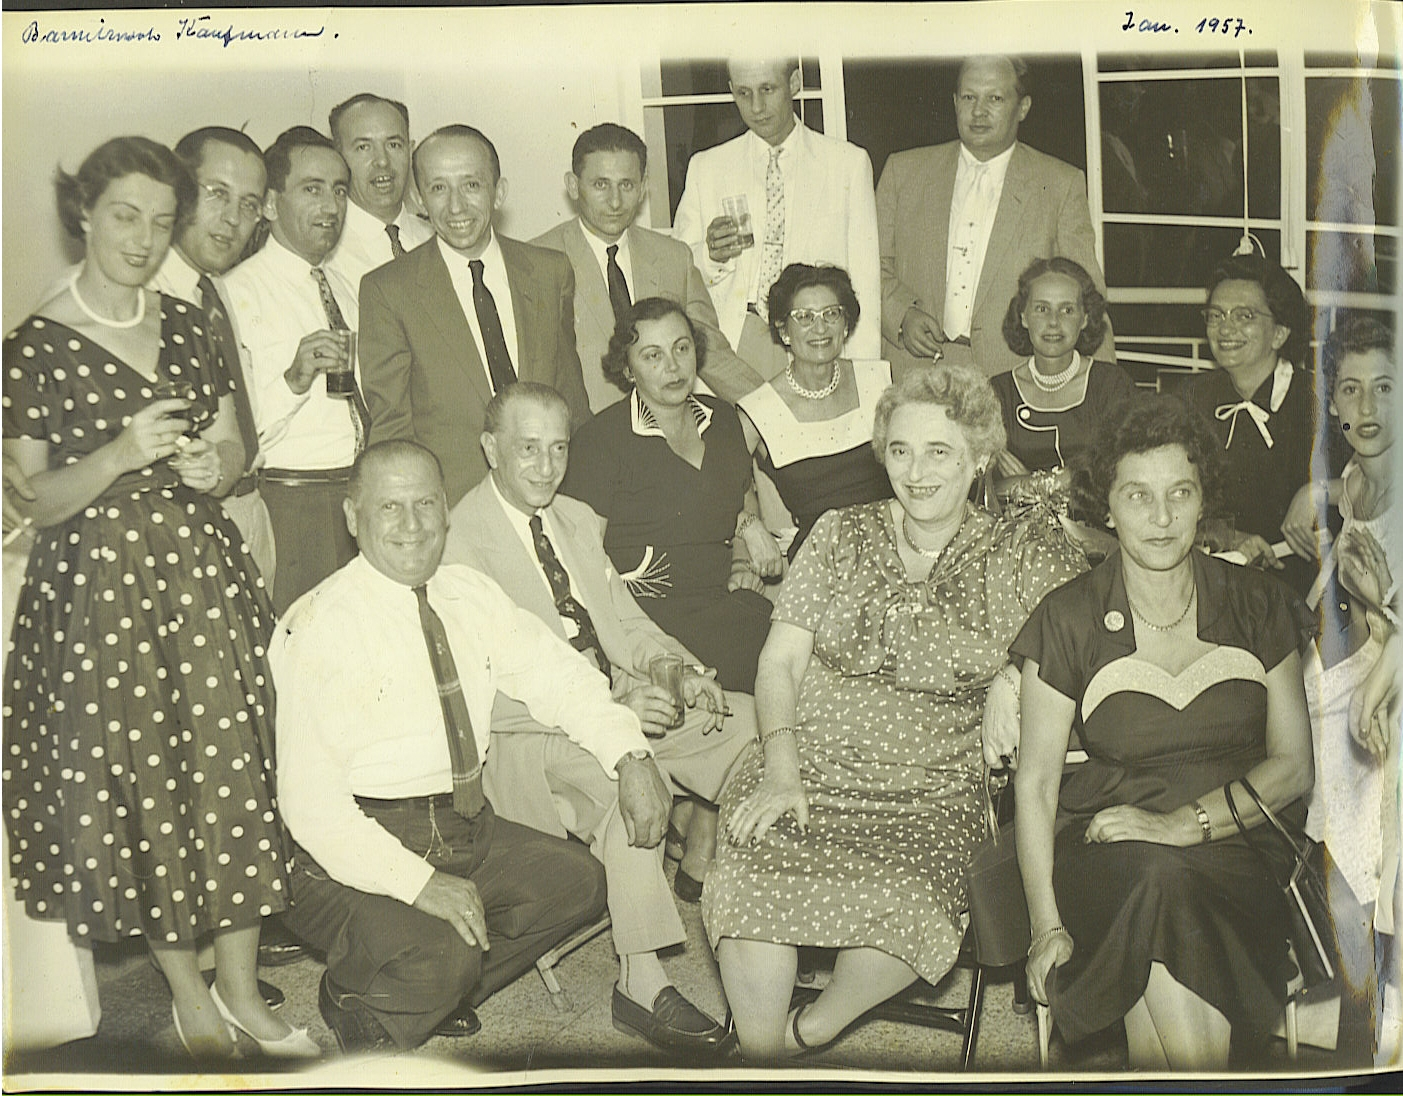 Photo taken at Bar Mitzvah of Danny Kaufmann_  Back row (L - R)_ Ilse Grunewald (nee Koppel) , Heinz